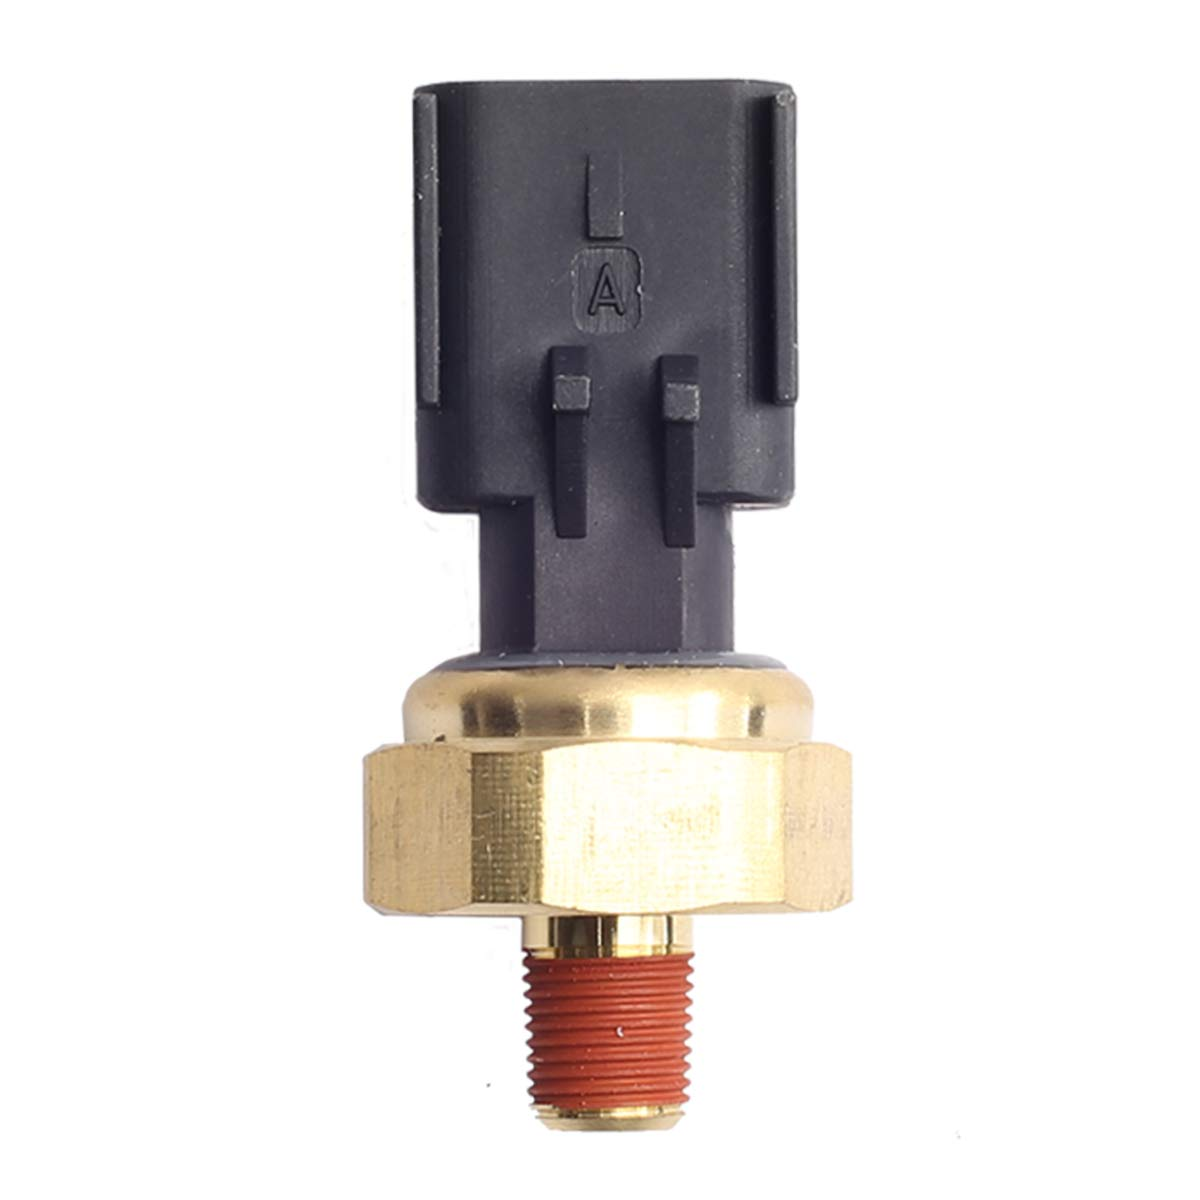 Volkswagen 1S6755 PS401 Oil Pressure Switch Ram 1500 2500 3500 Engine Oil Pressure Sensor Switch Sender Sending Unit 5149064AA Jeep 5149062AB Compatible with Dodge Ram Chrysler 5149062AA